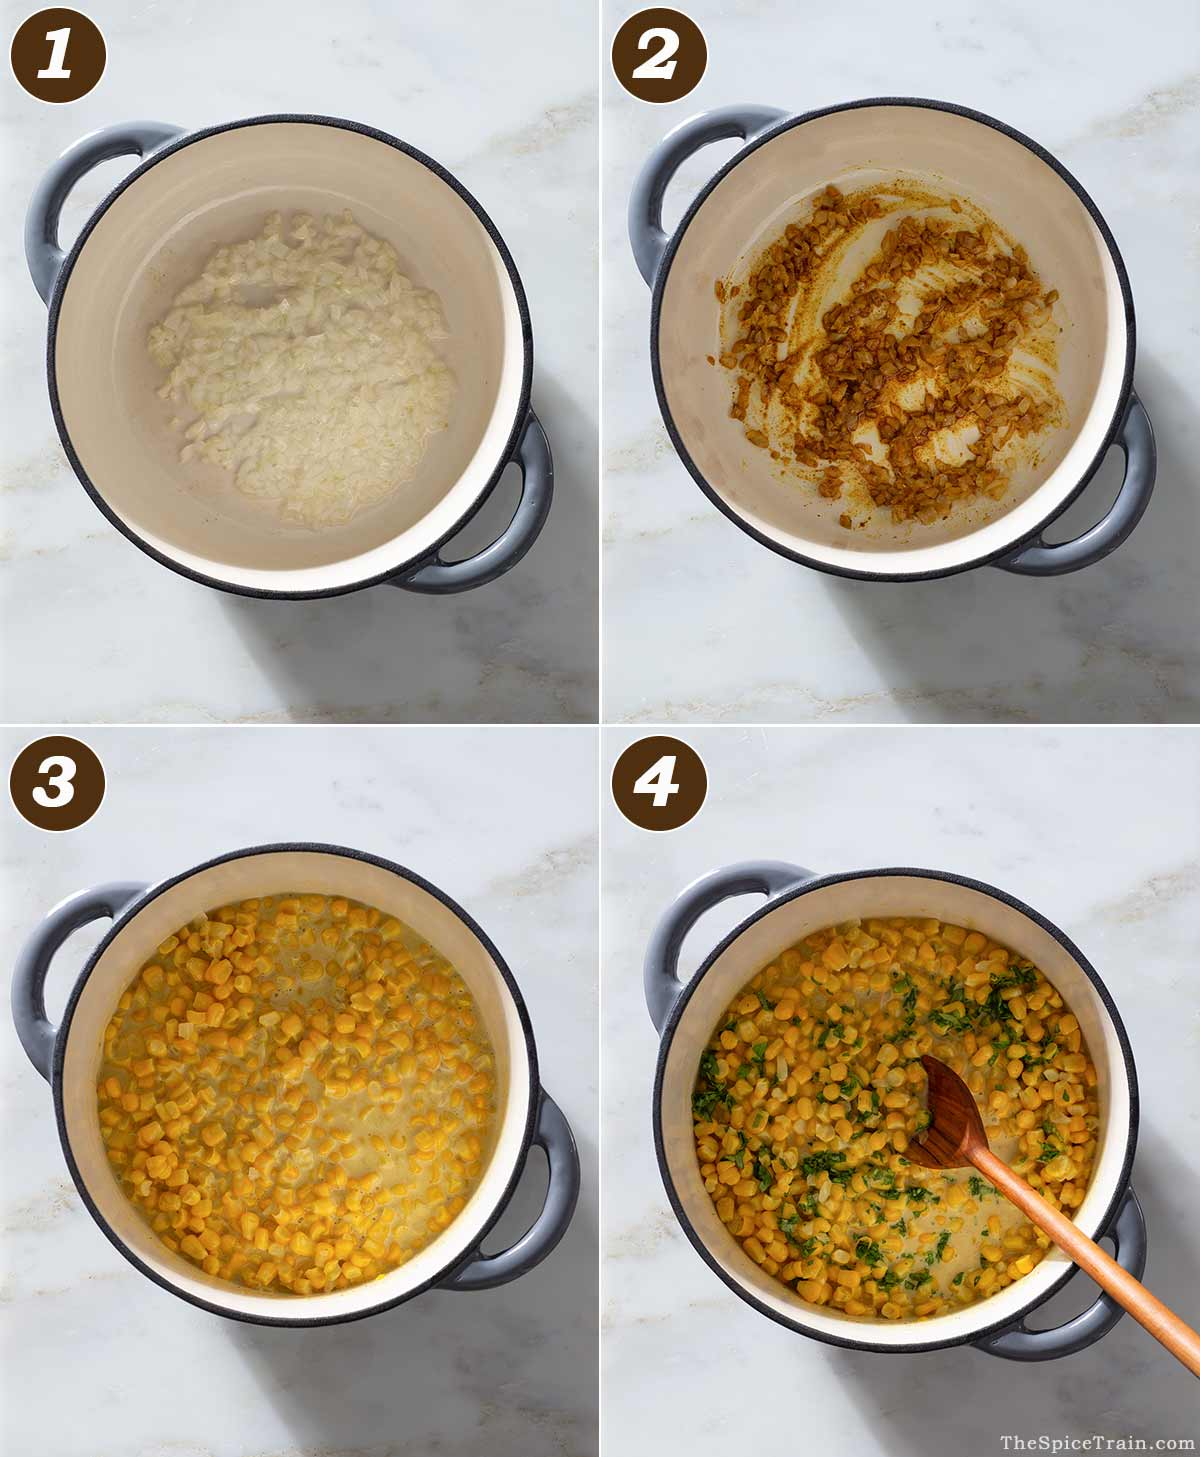 Curried corn being prepared in four steps in a Dutch oven.